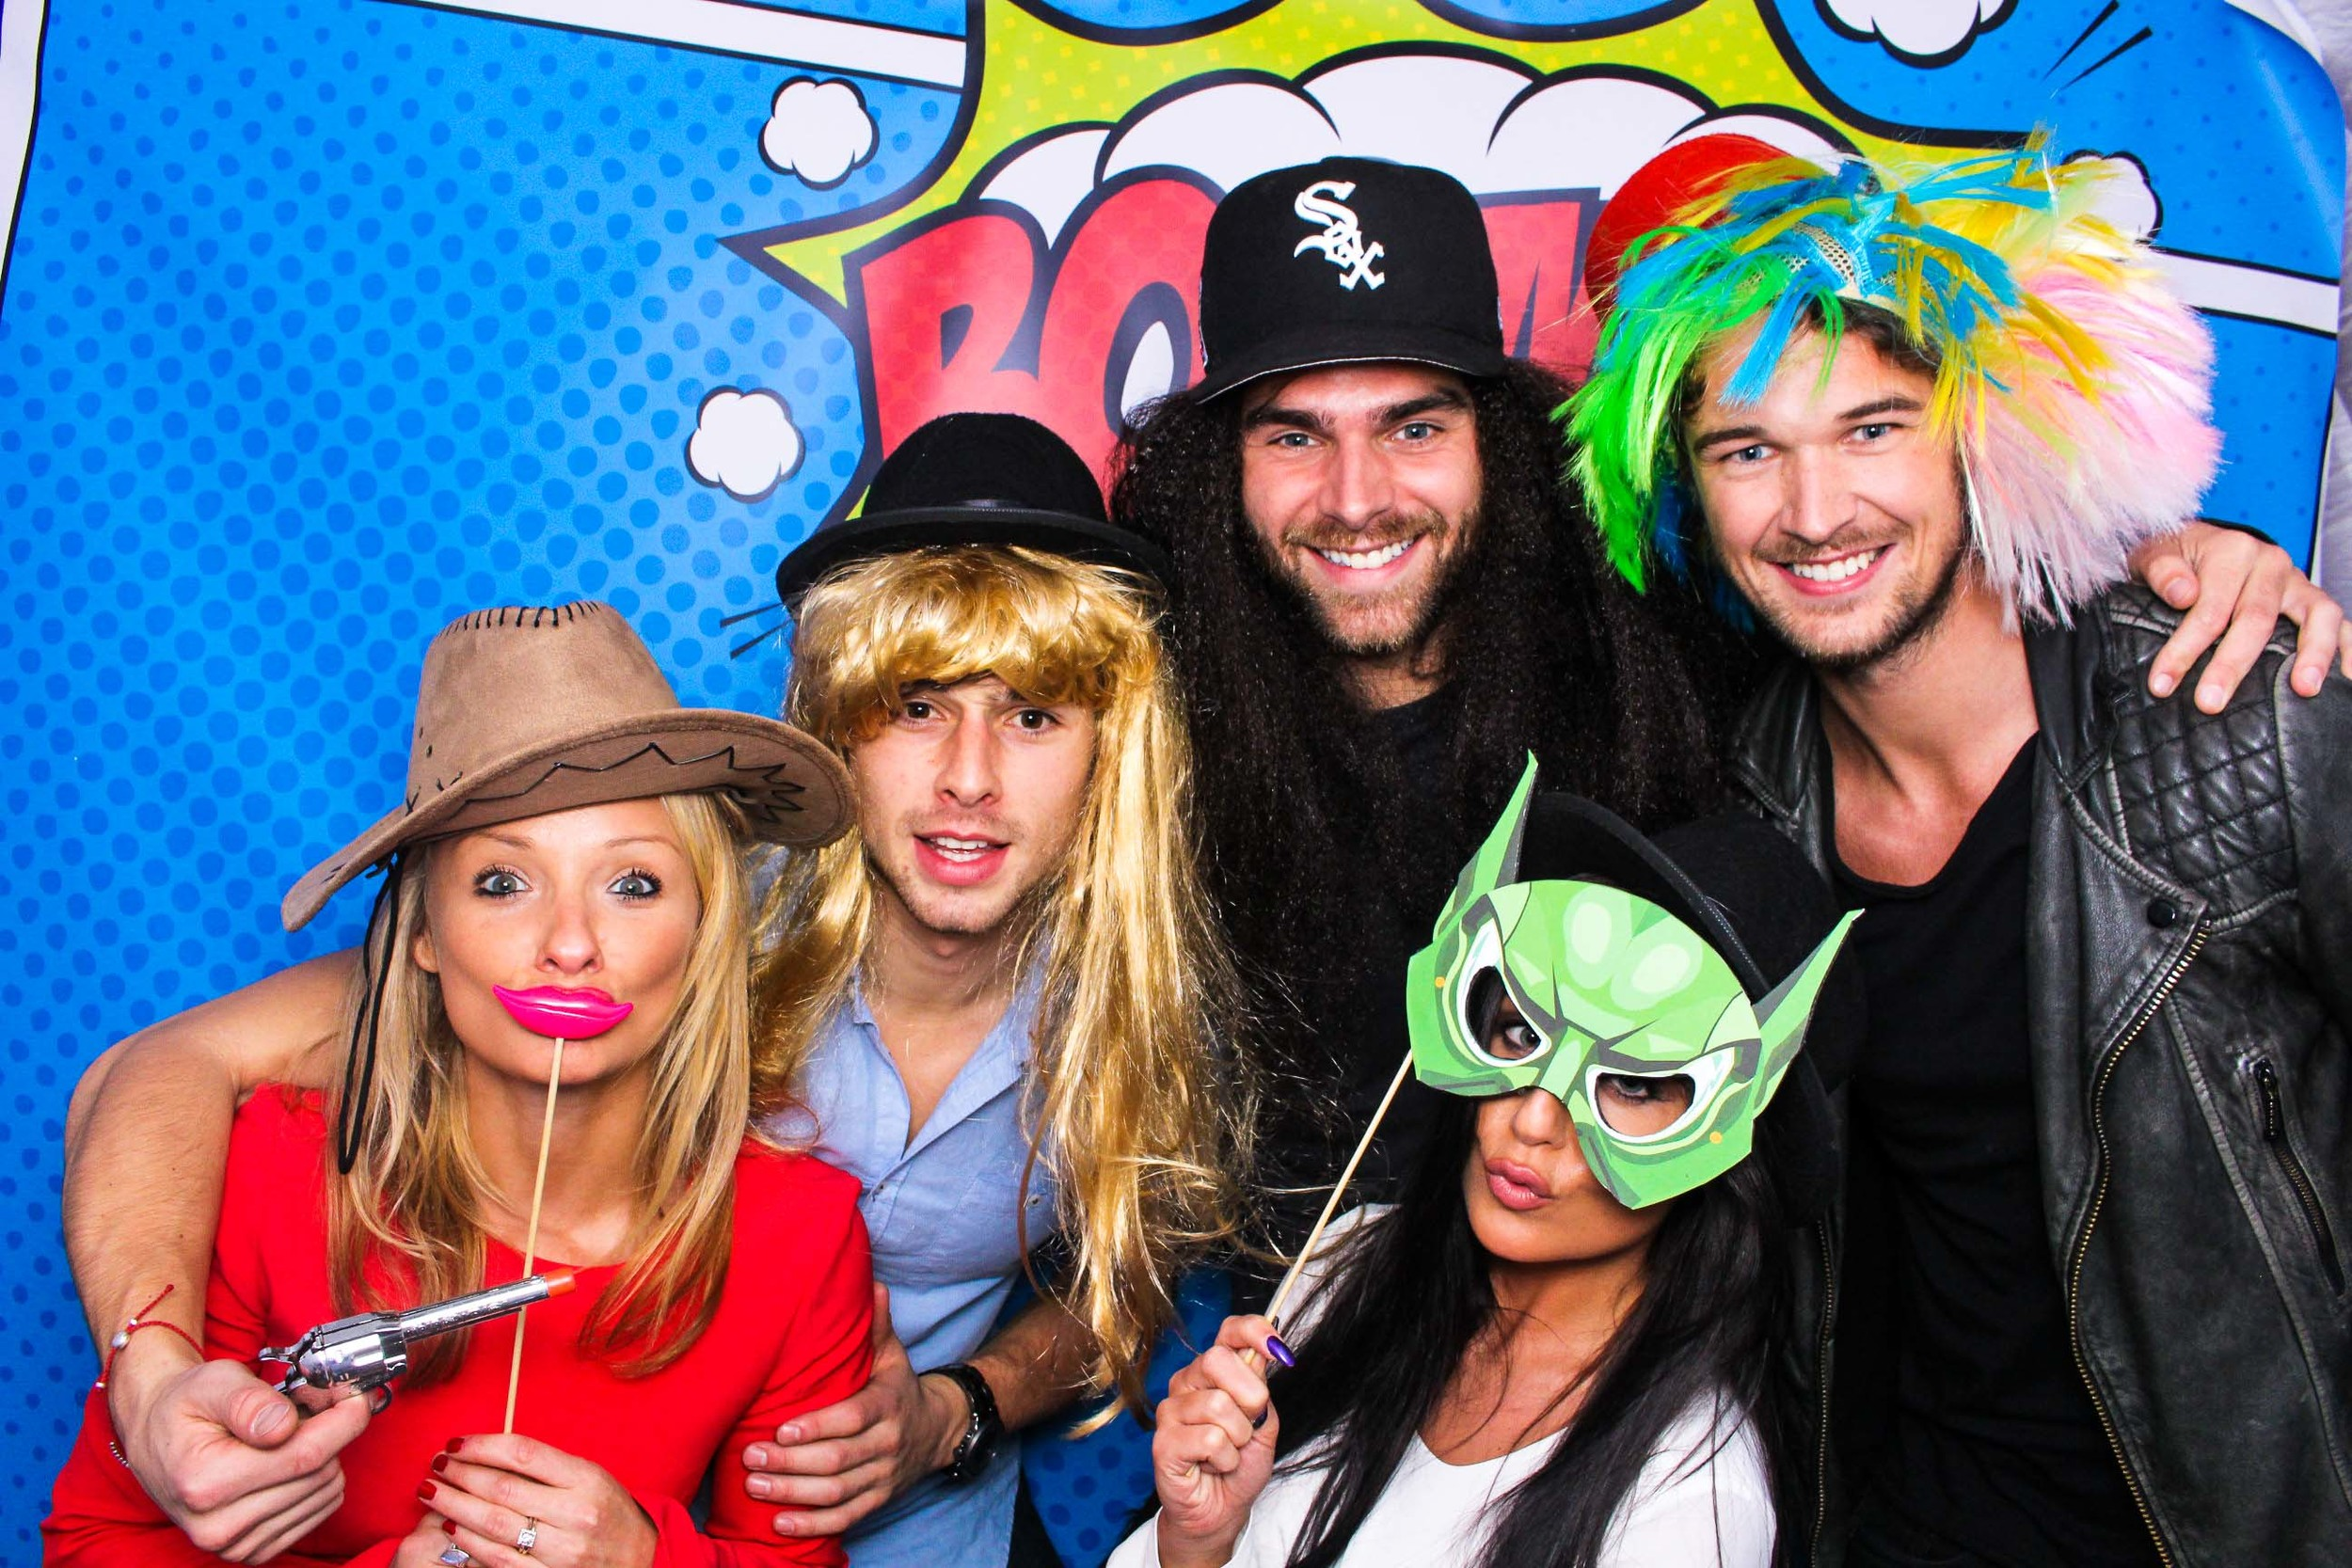 Fotoauto Photo Booth Hire - Shop Direct-53.jpg